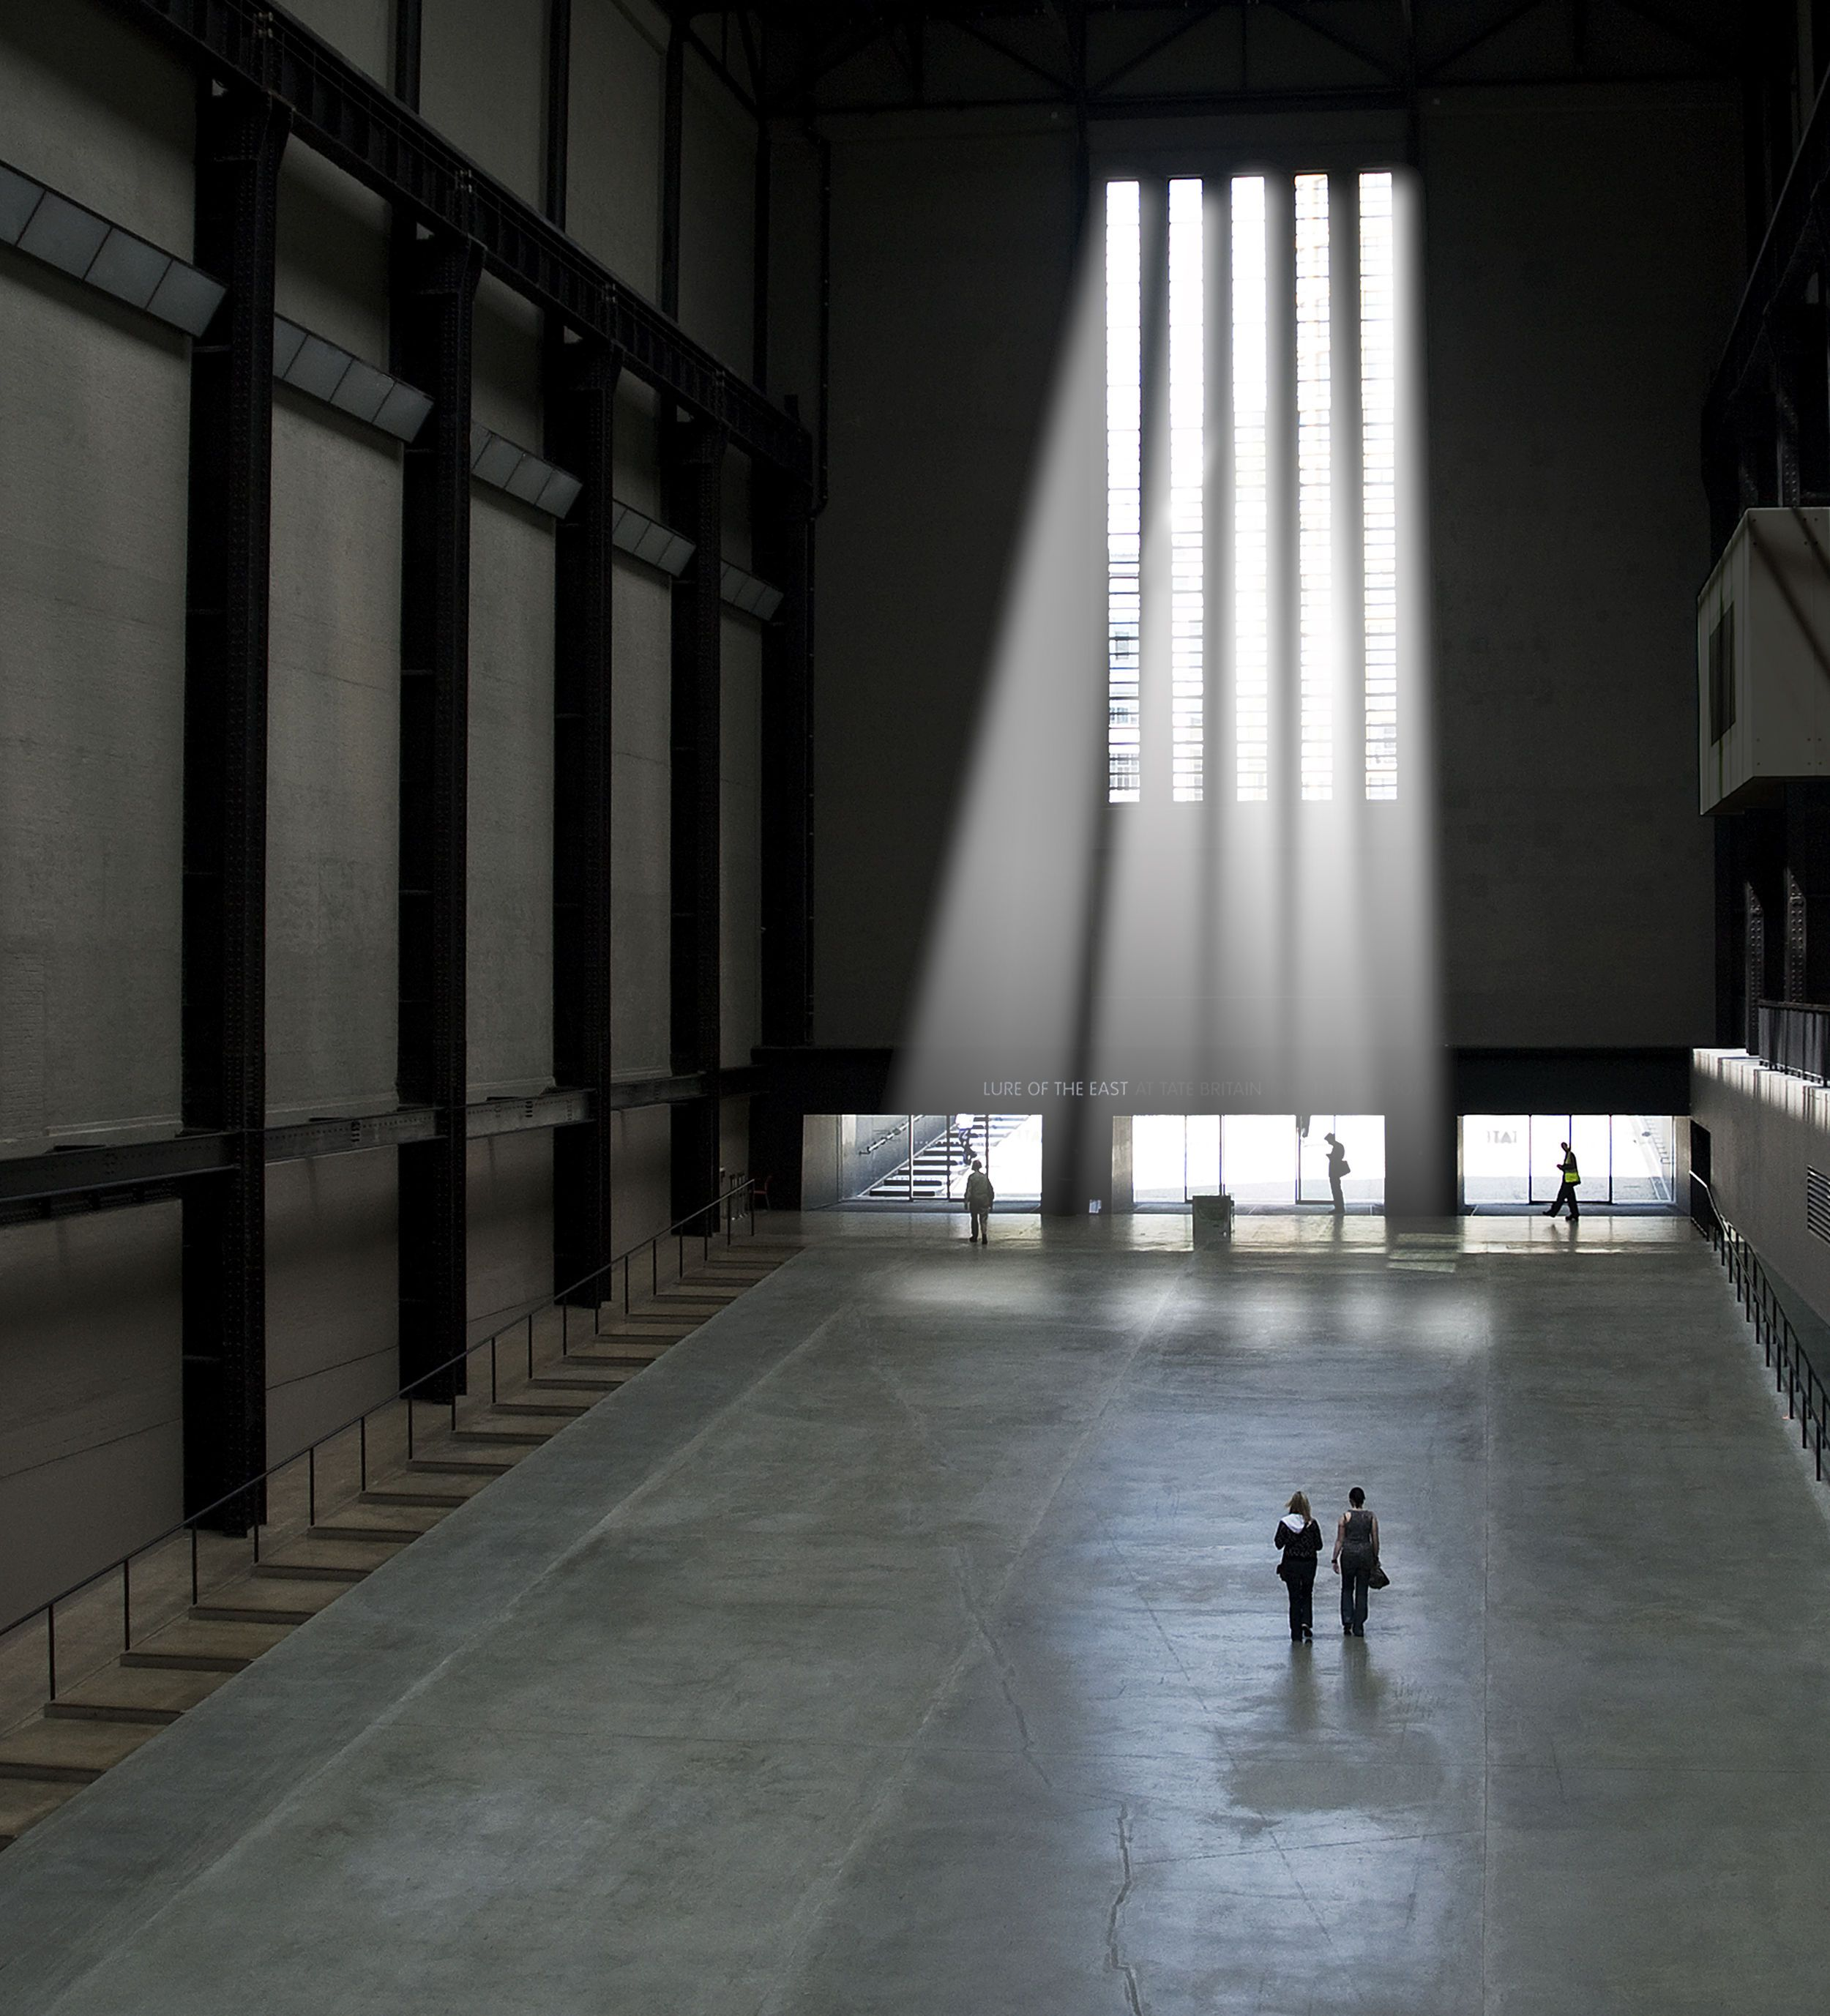 The Tate Modern In London I Love This Museum Tate Modern London London Architecture Tate Modern